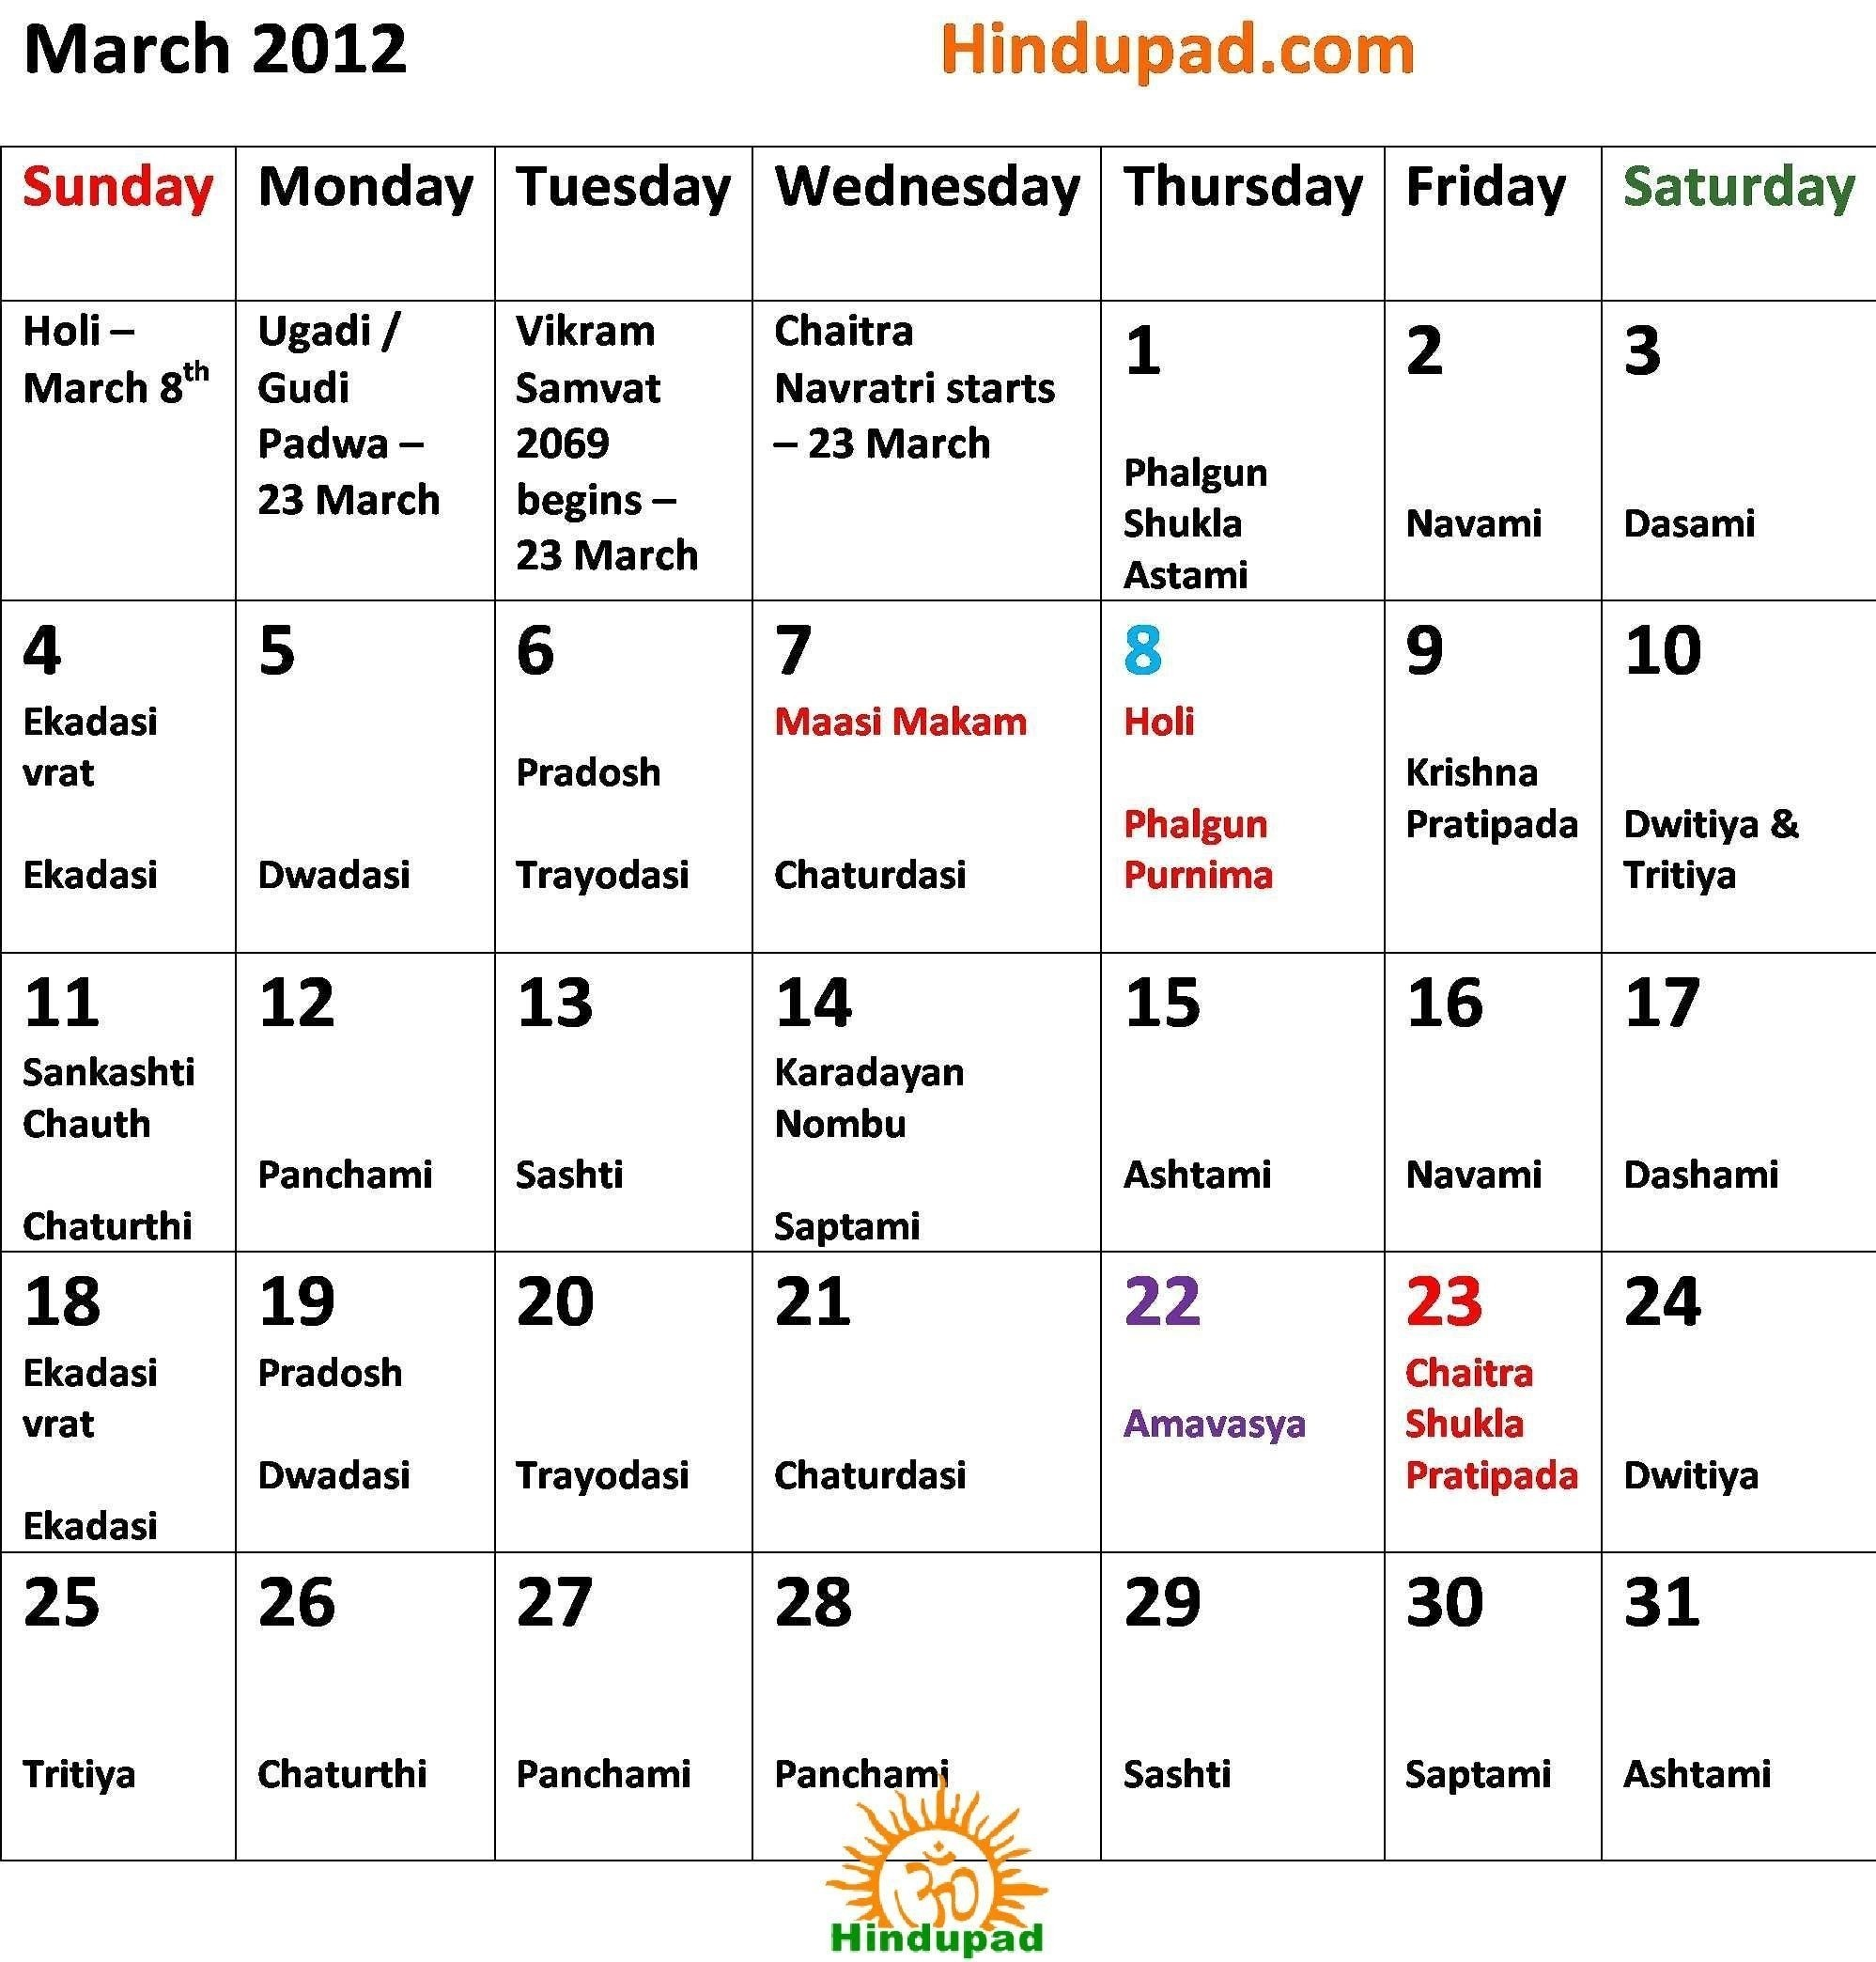 Gujarati Calendar March 2018 Más Recientes Baps Calendar 2018 Choghadiya Of Gujarati Calendar March 2018 Más Recientemente Liberado 2018 Navaratri Festival In India Essential Guide